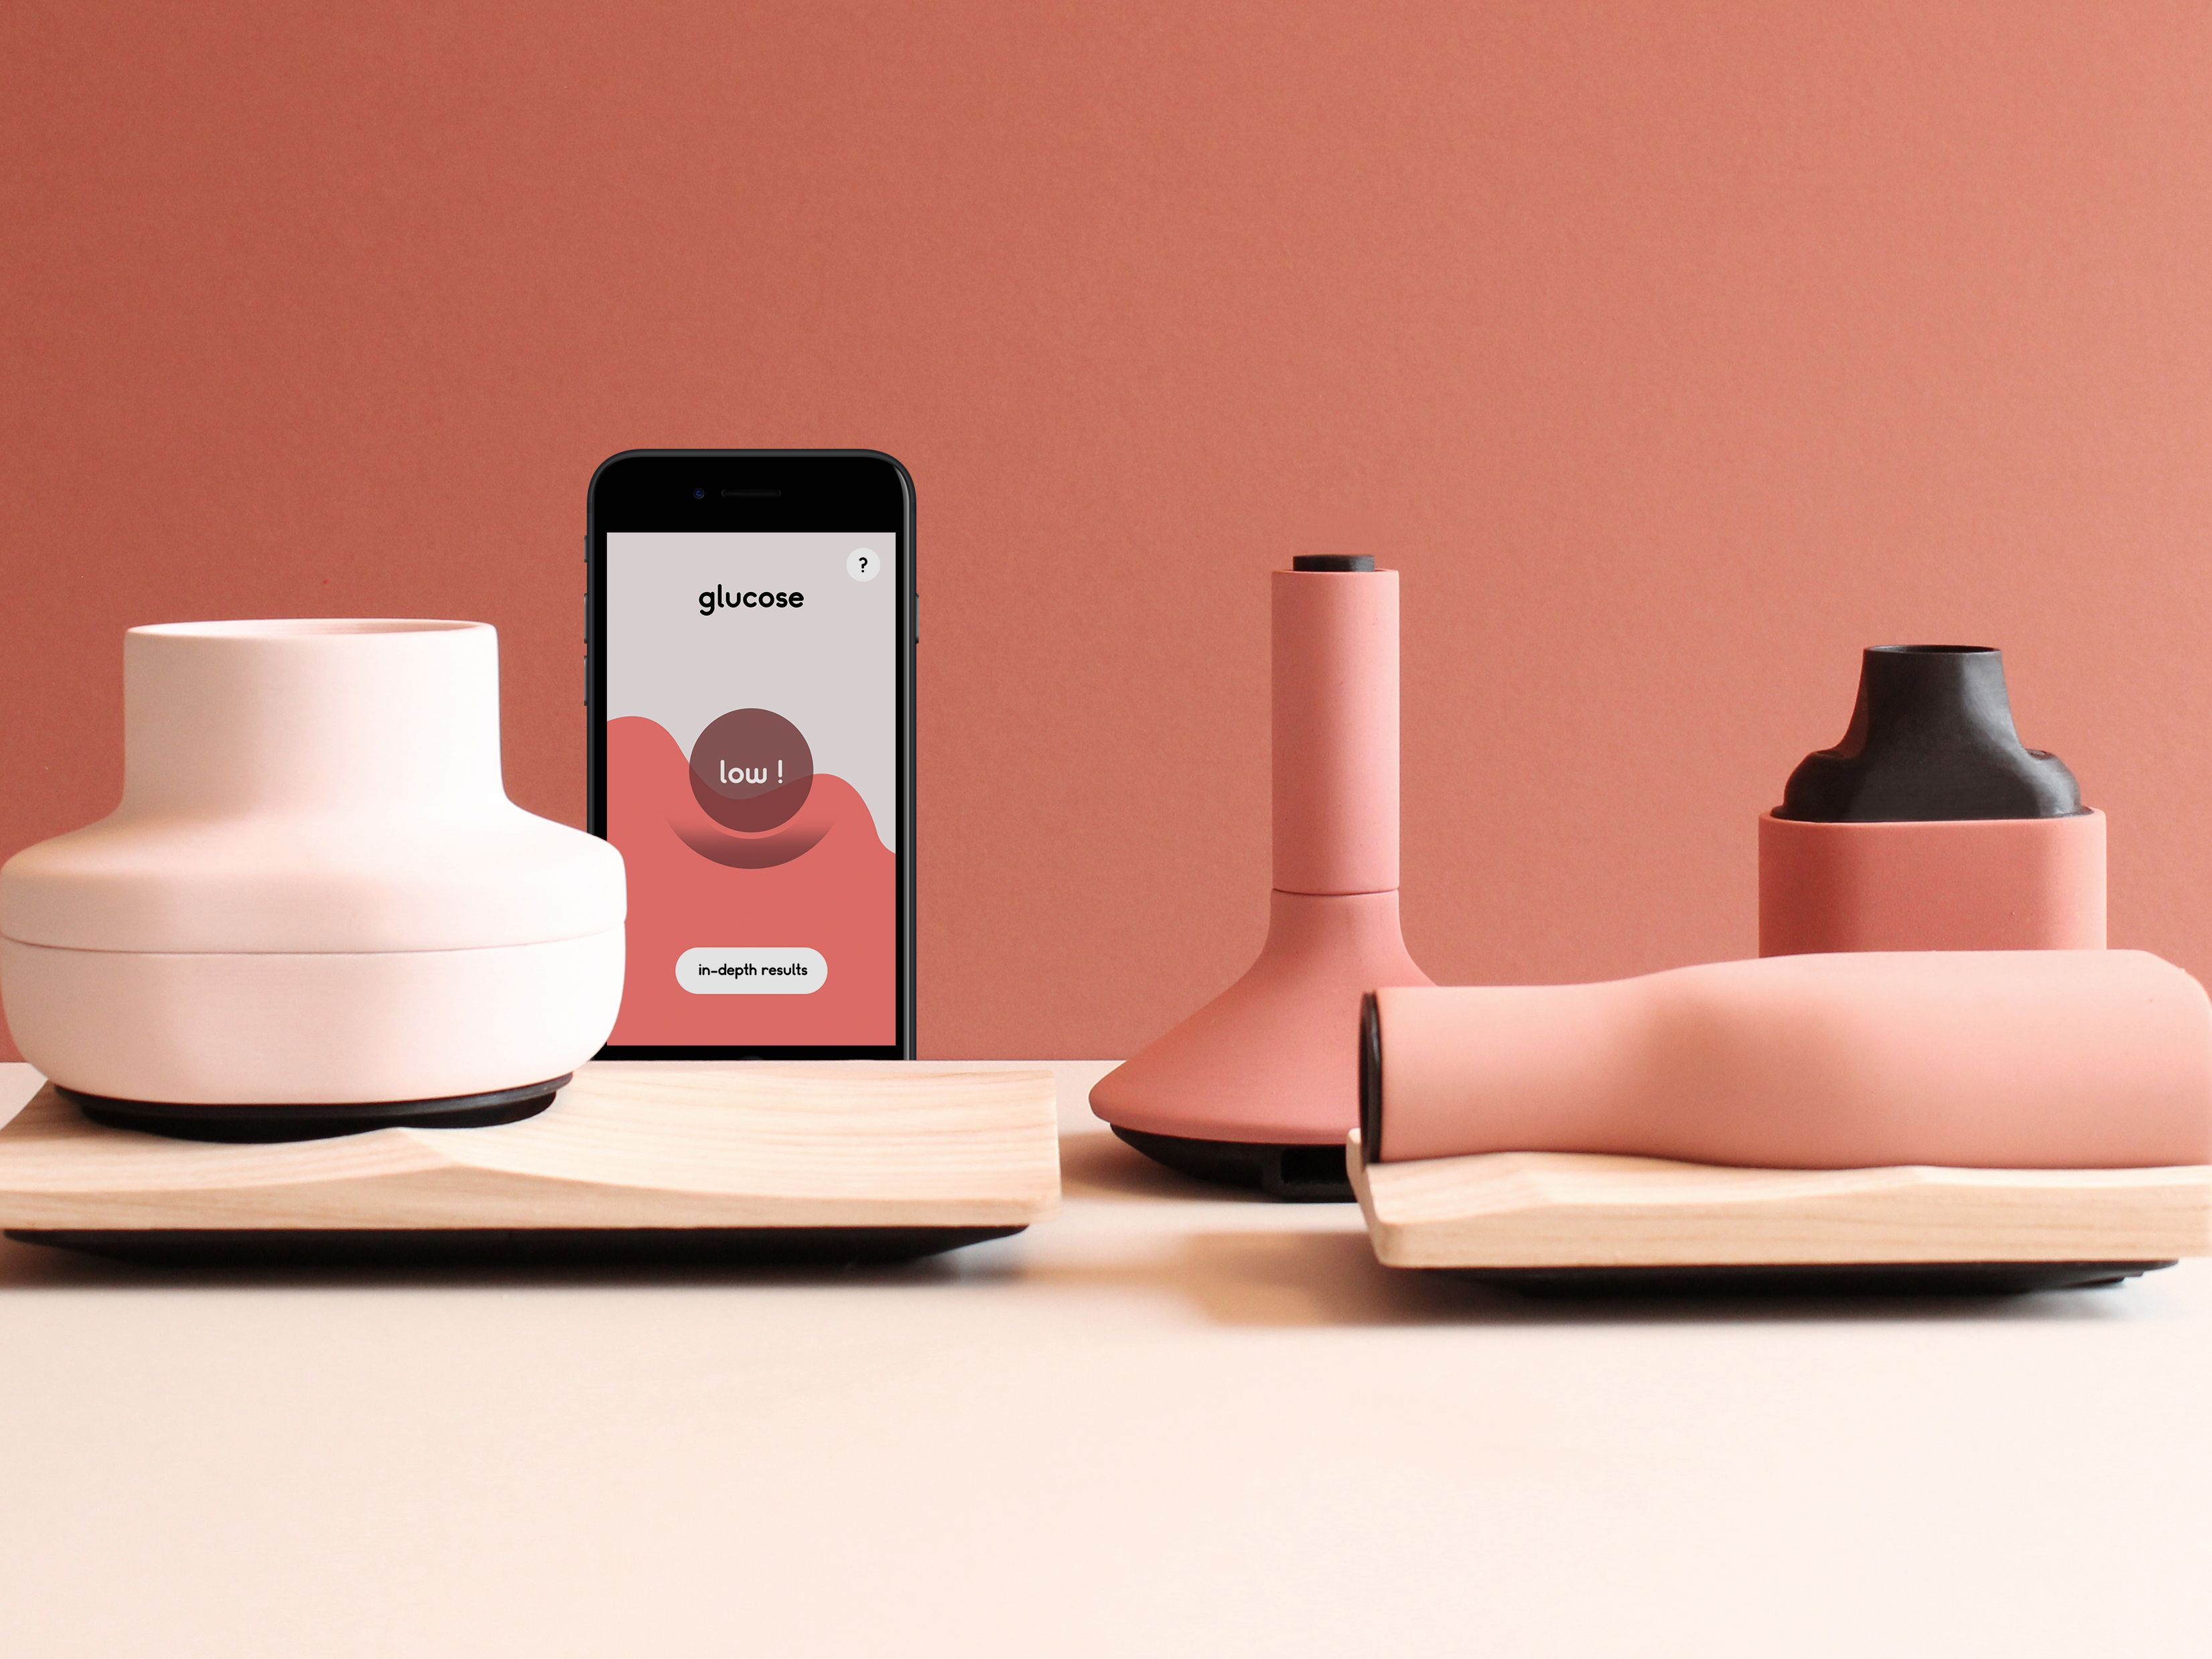 Pink and peach coloured ceramics arranged next to an iPhone